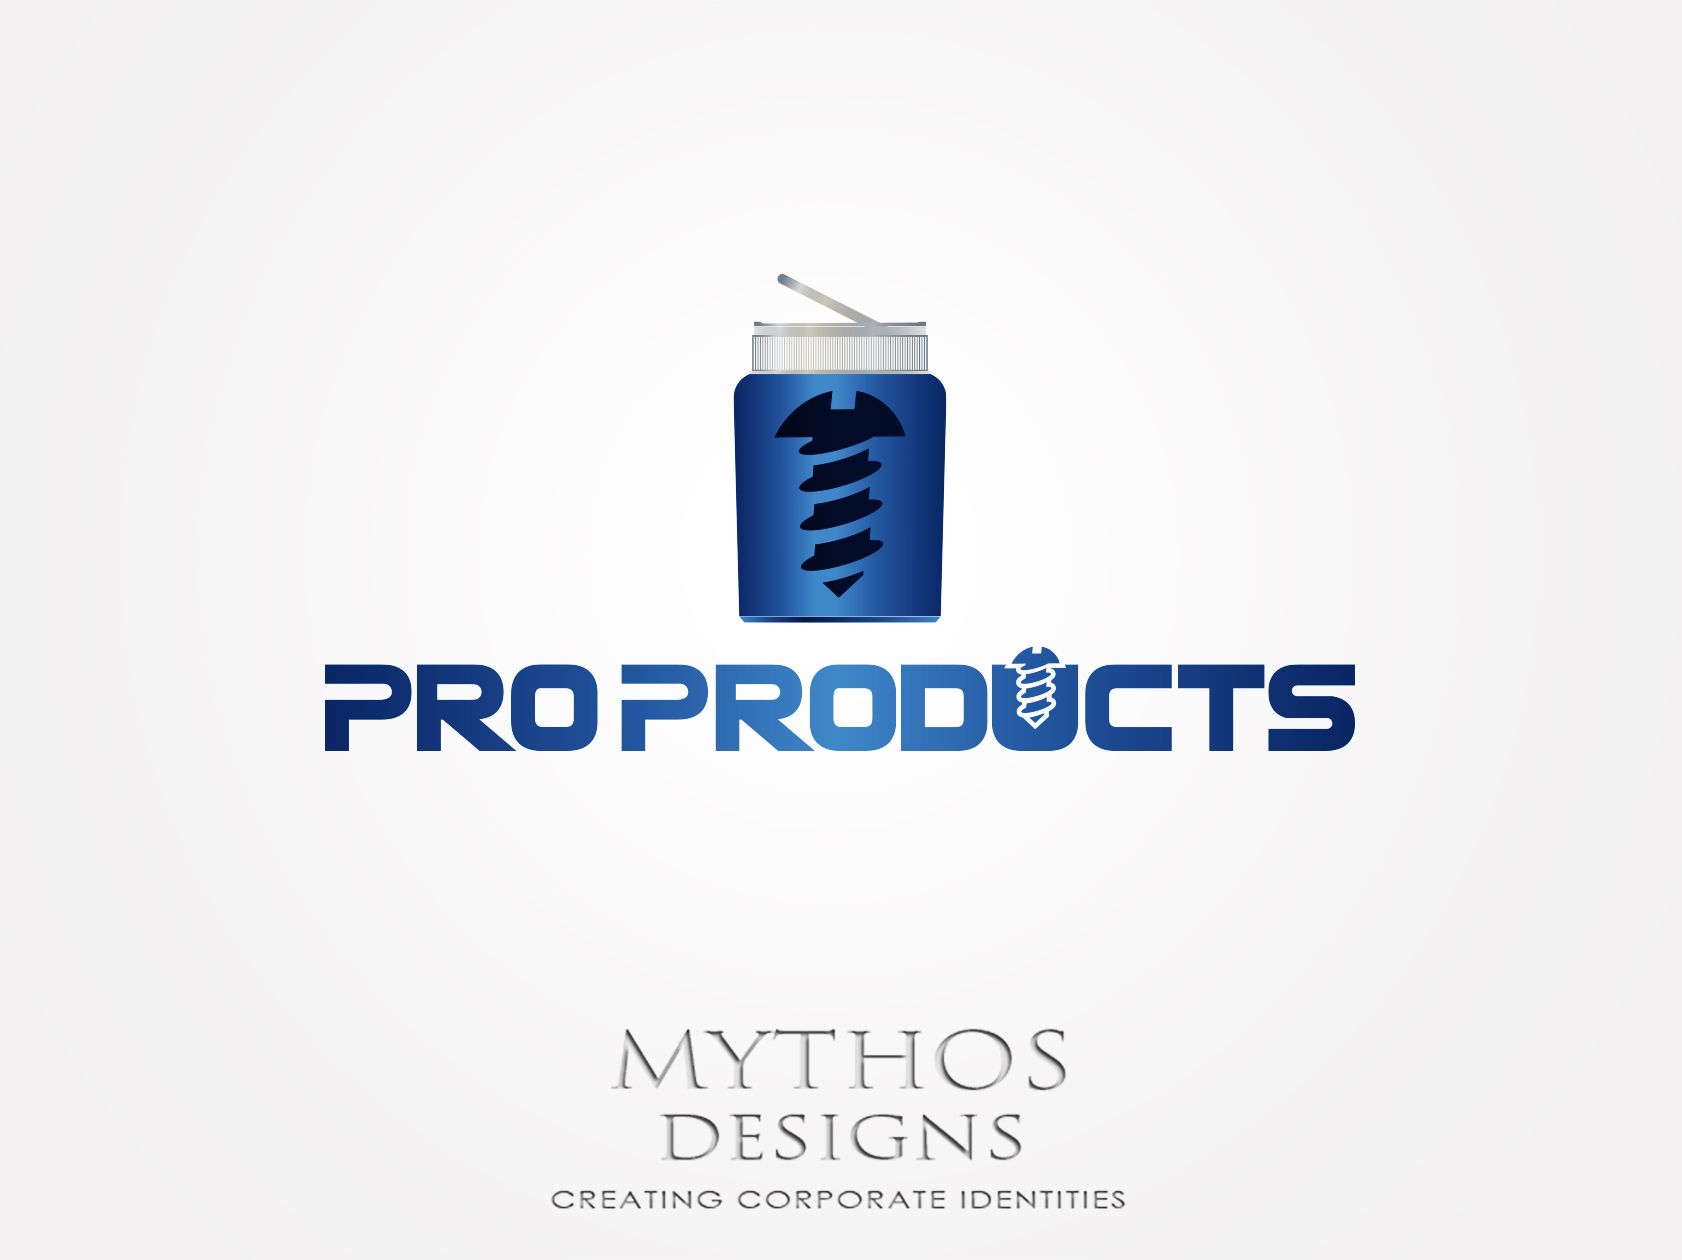 Logo Design by Mythos Designs - Entry No. 34 in the Logo Design Contest Fun yet Professional Logo Design for ProProducts.